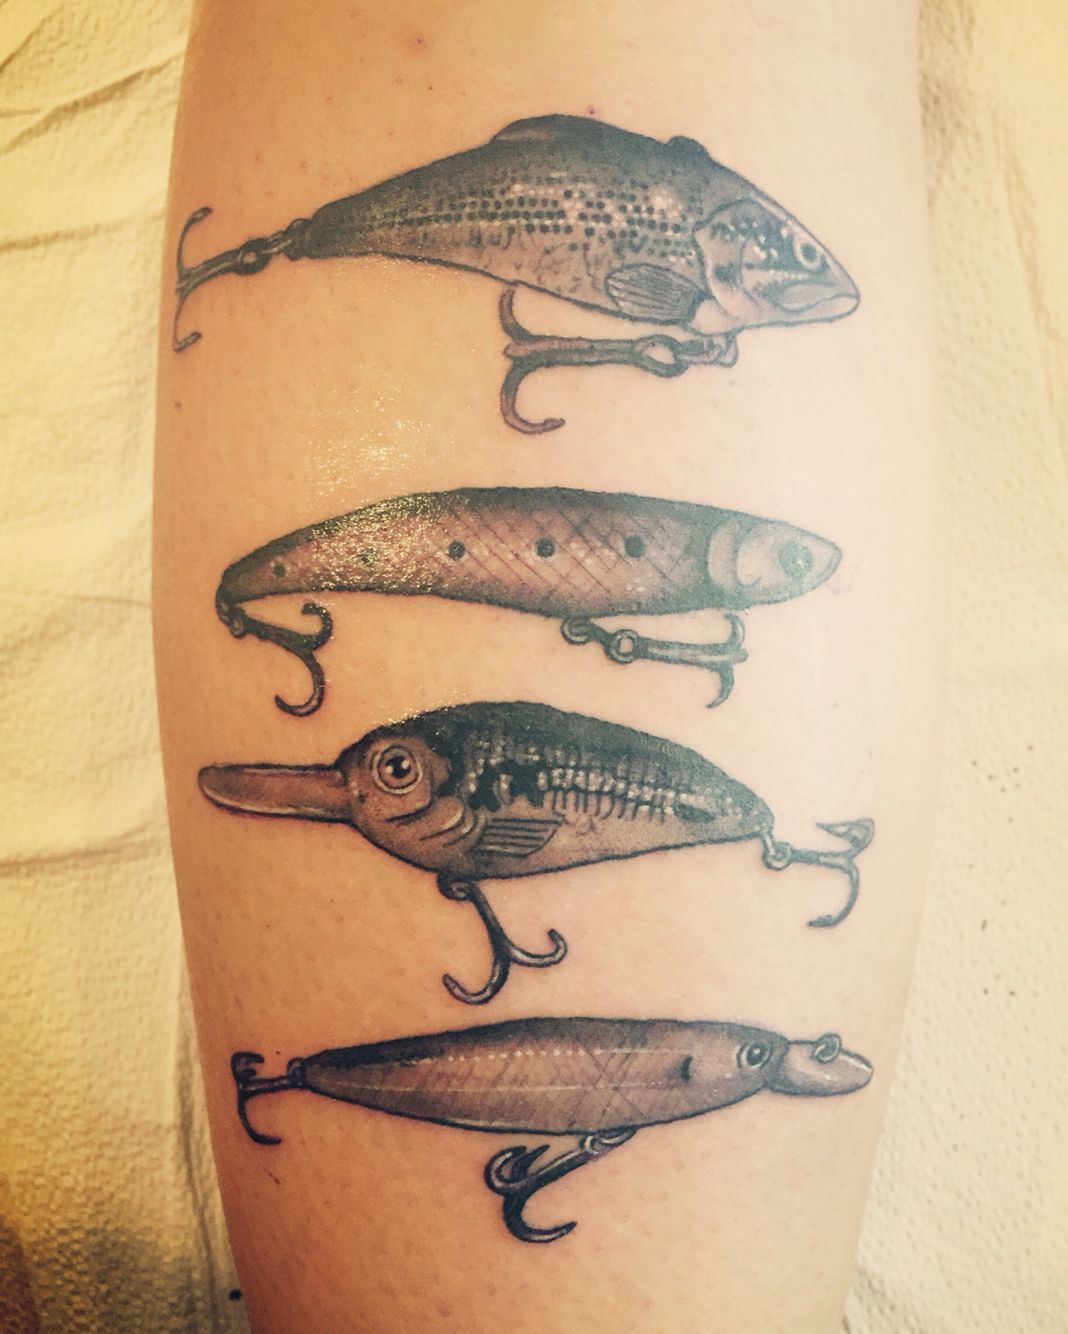 c33c9f10e4290 Fishing lure tattoo #fishing #lures | Tattoos & piercings | Fishing ...